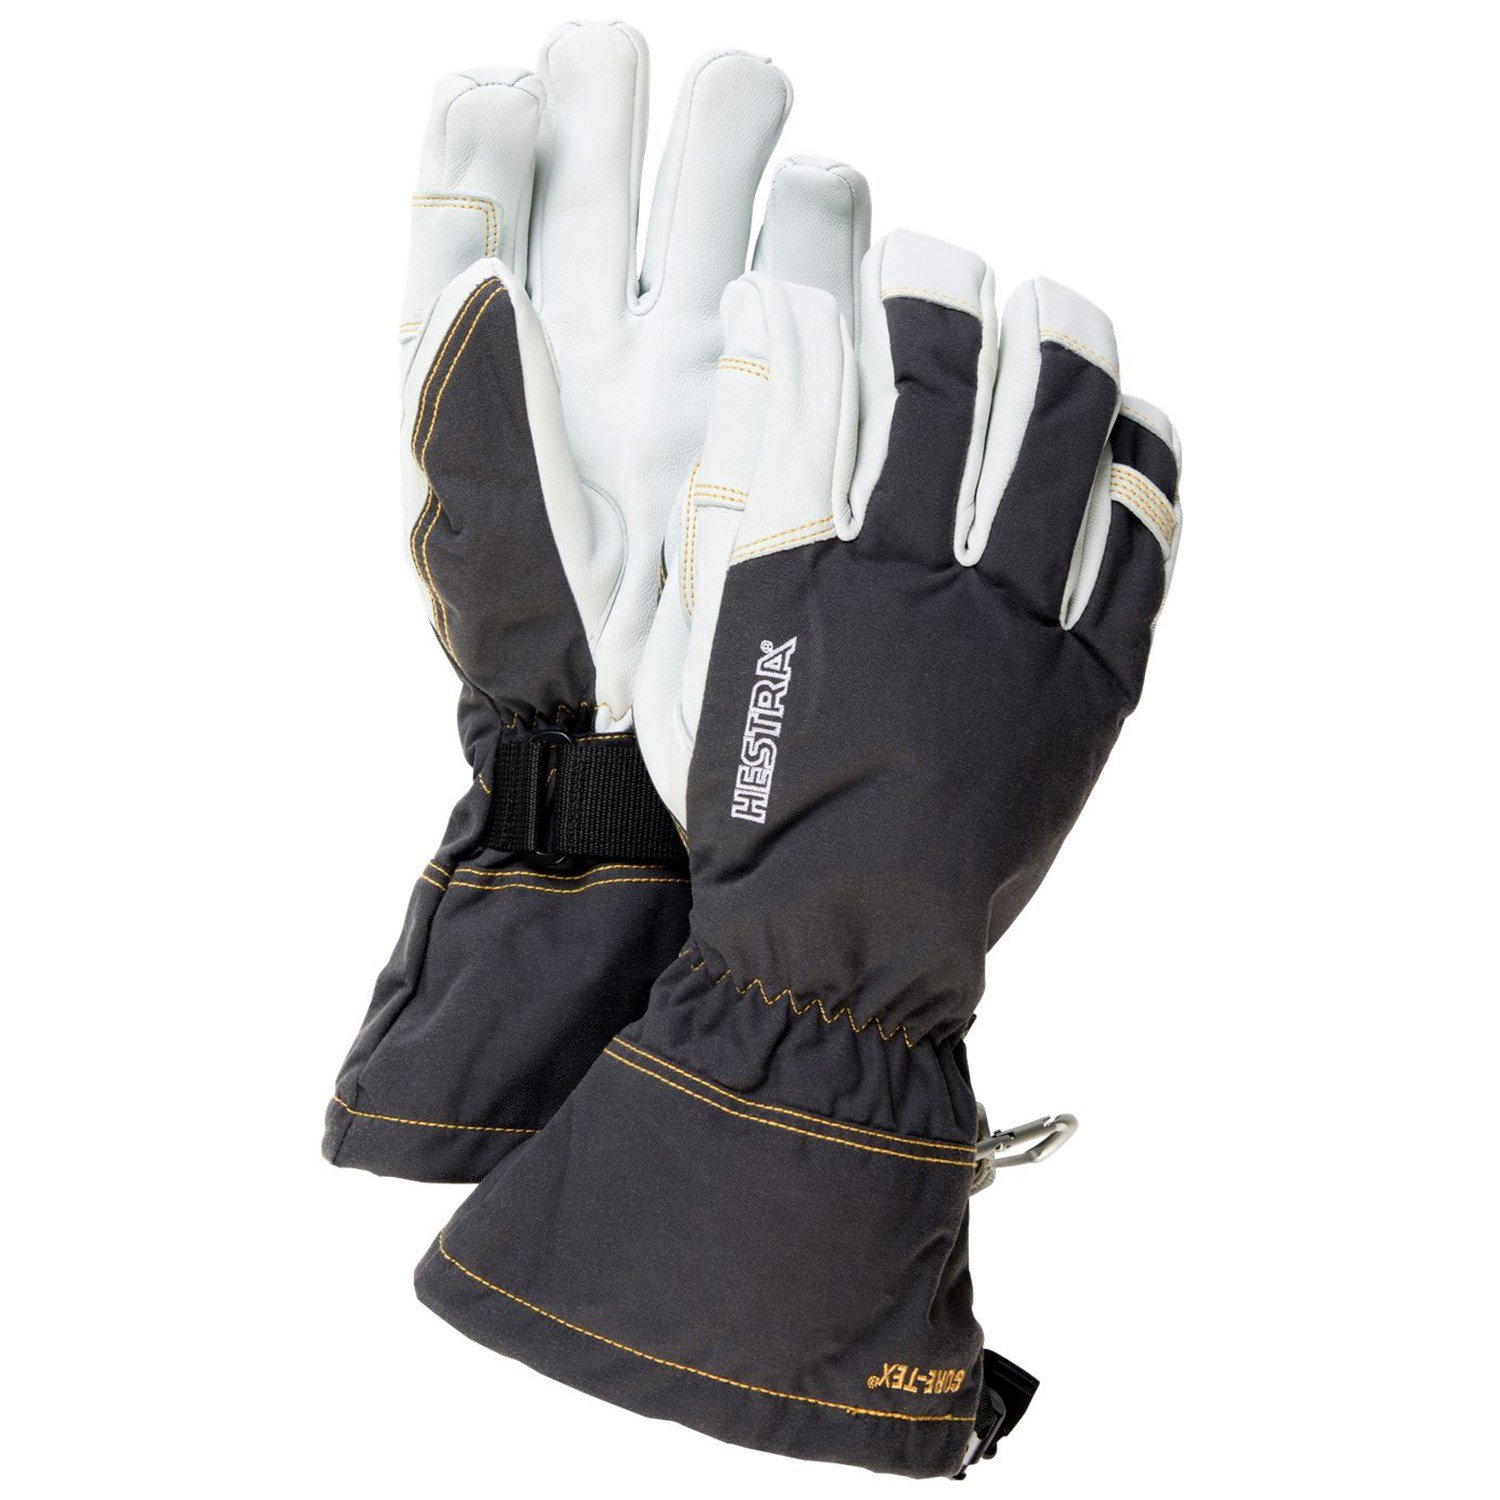 Hestra mens gloves - Hestra Mens Gloves 43